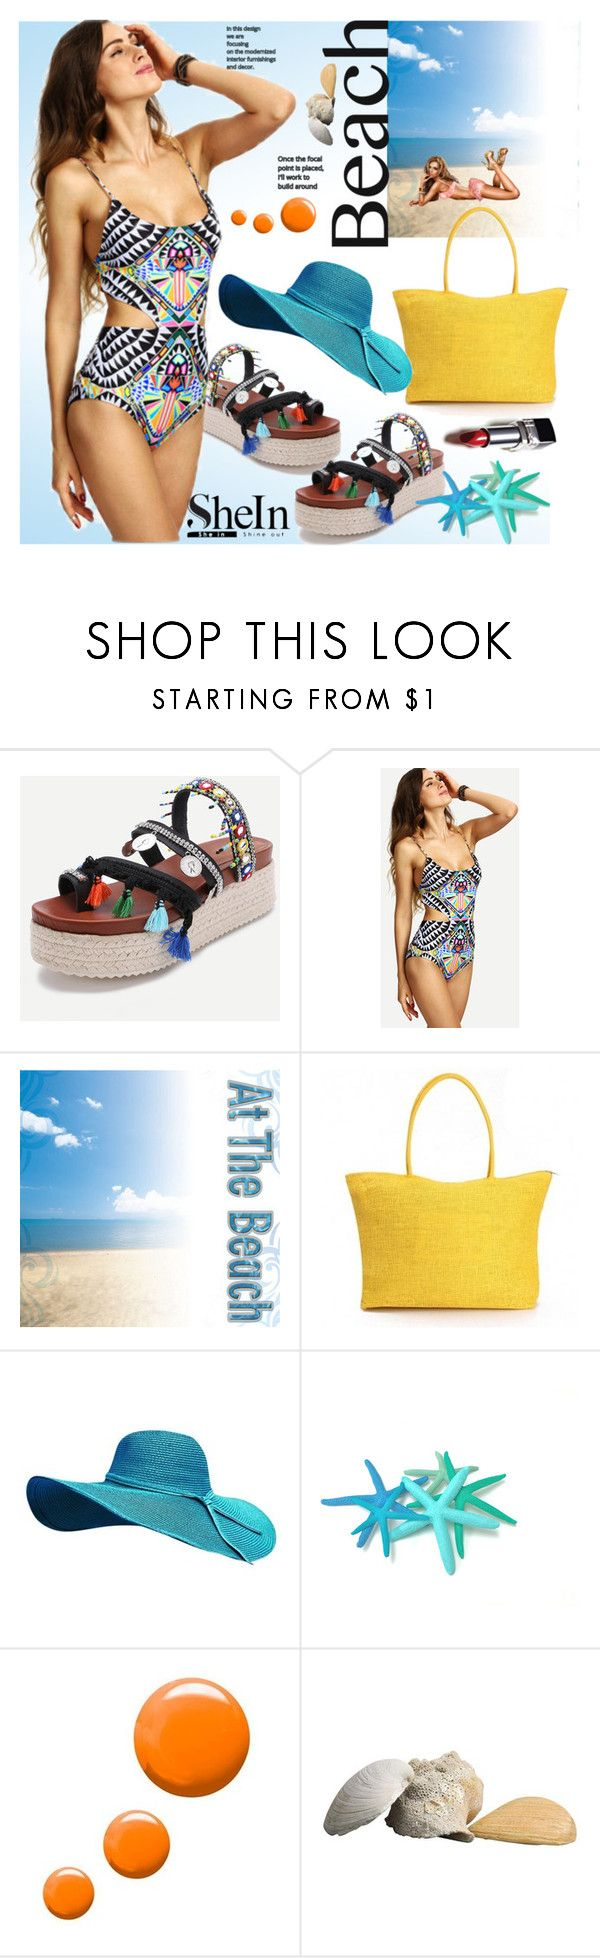 """Tribal Swimwear with SheIn"" by markitahamilton3 ❤ liked on Polyvore featuring Topshop, swimwear, tribal and shein"